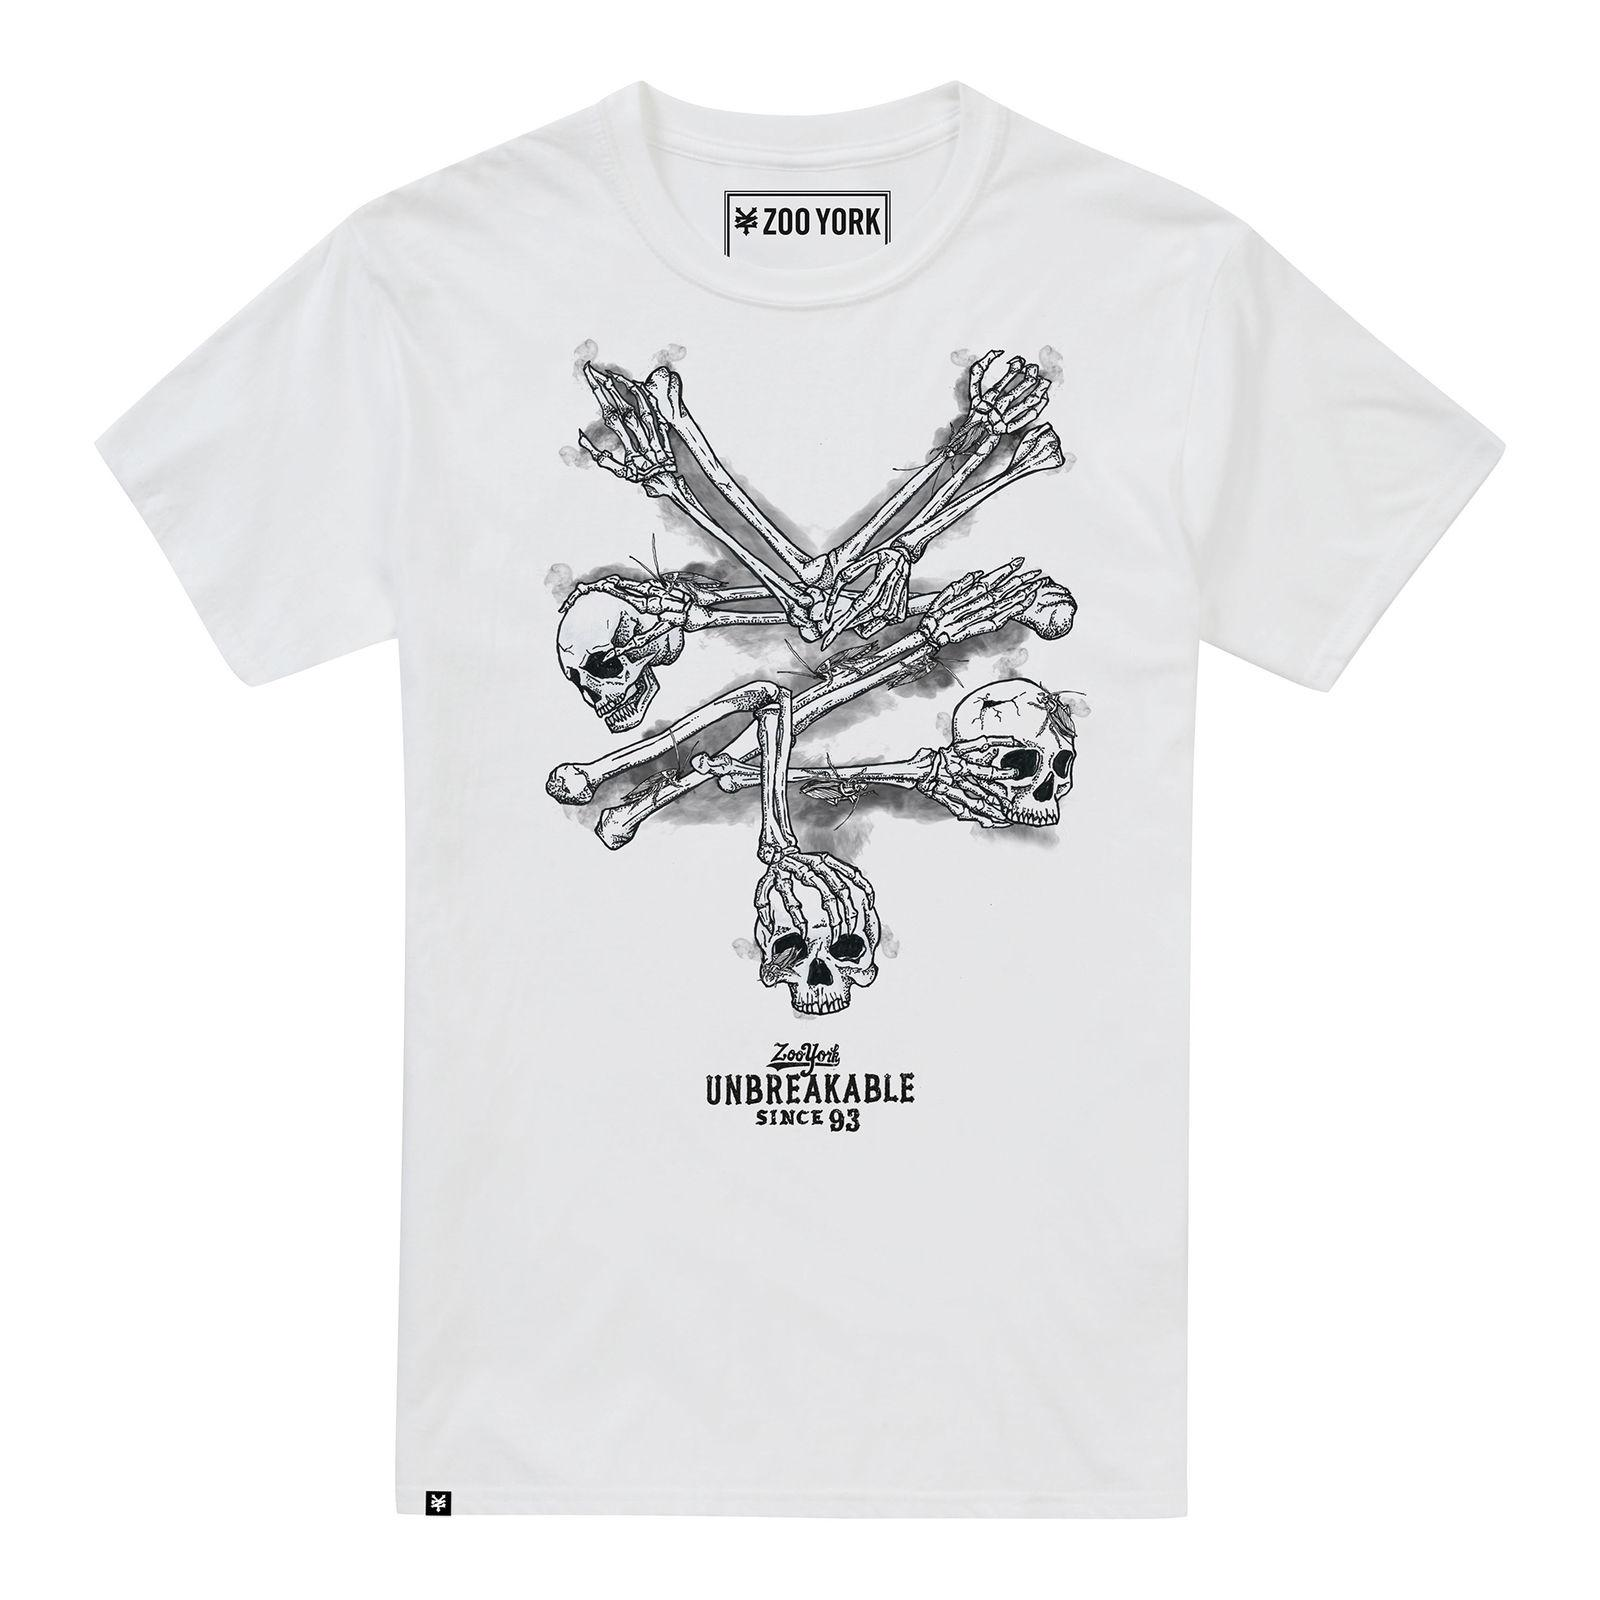 7f2cf17bb4a7f ZOO YORK BONES MENS T WHITE Interesting T Shirt Designs T Shirts Cool  Designs From Cooltees